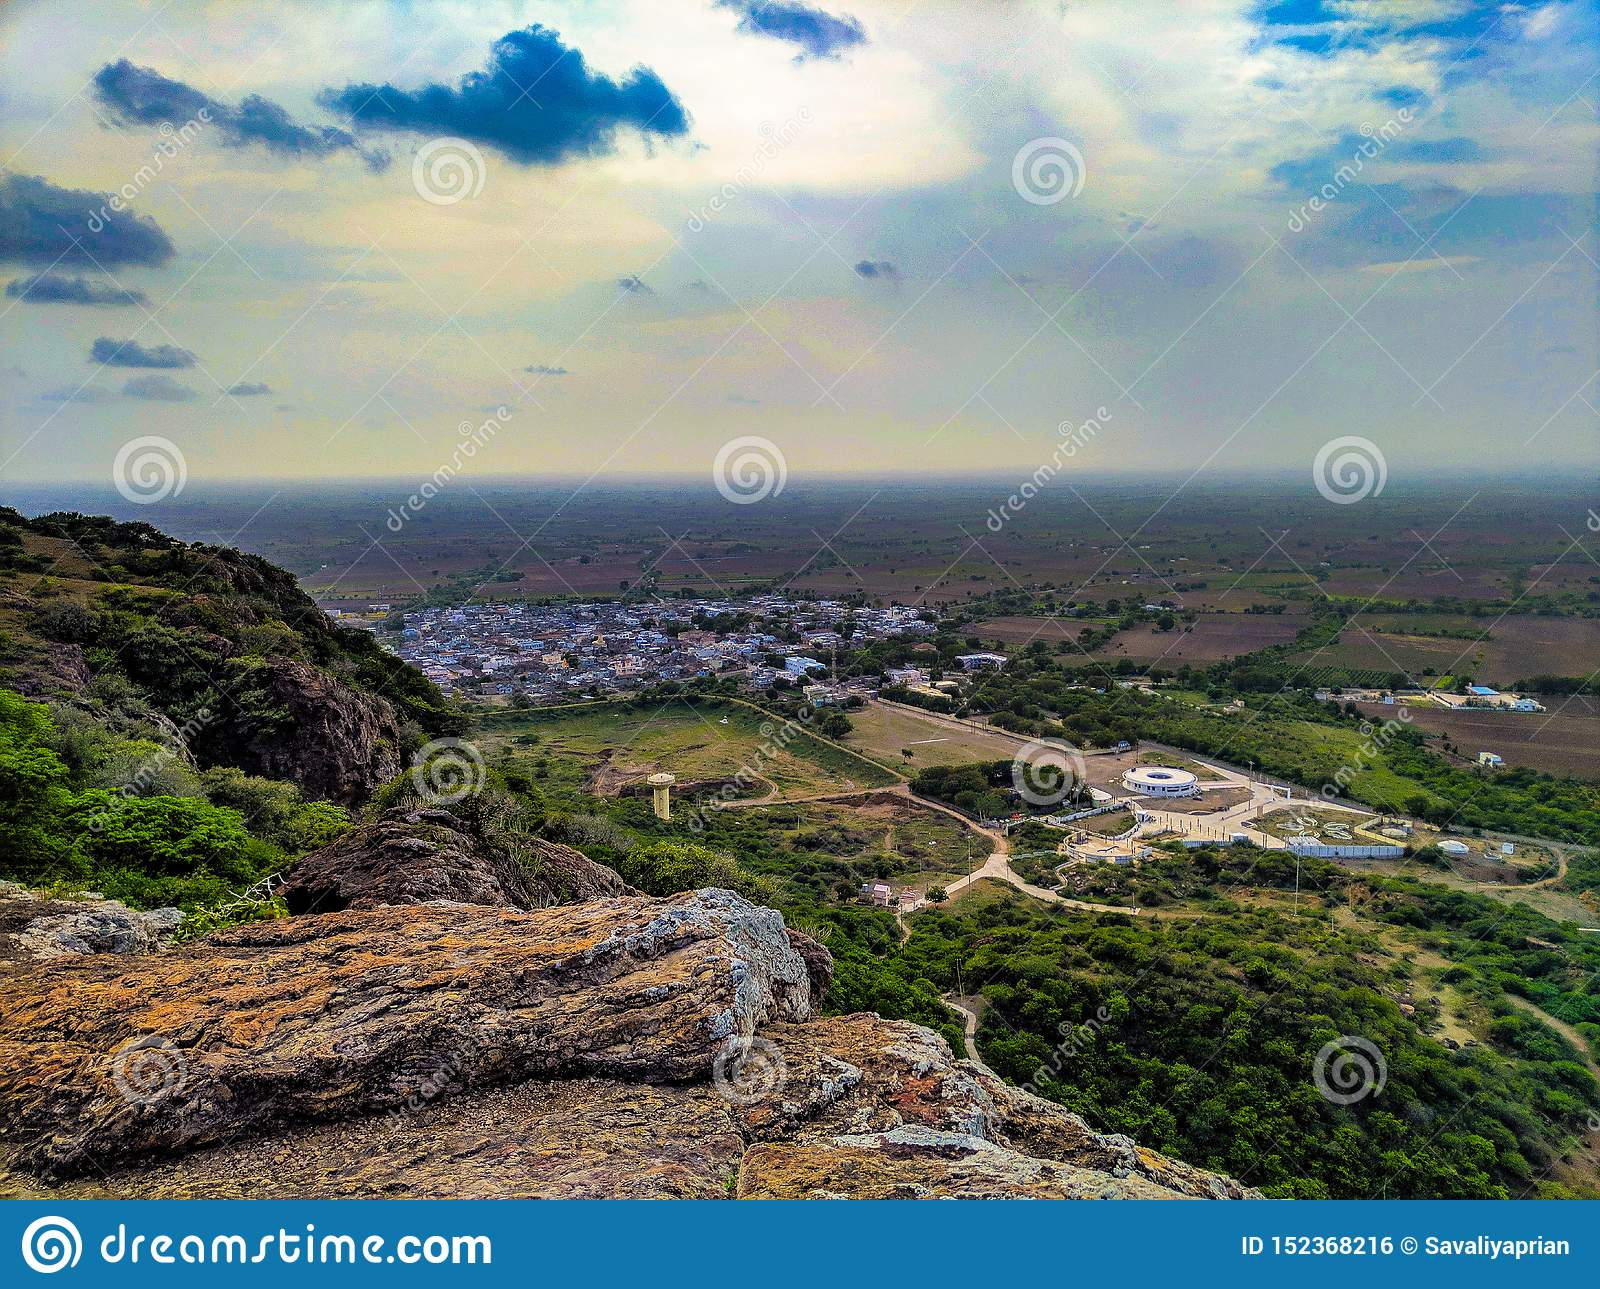 Topview from mountain